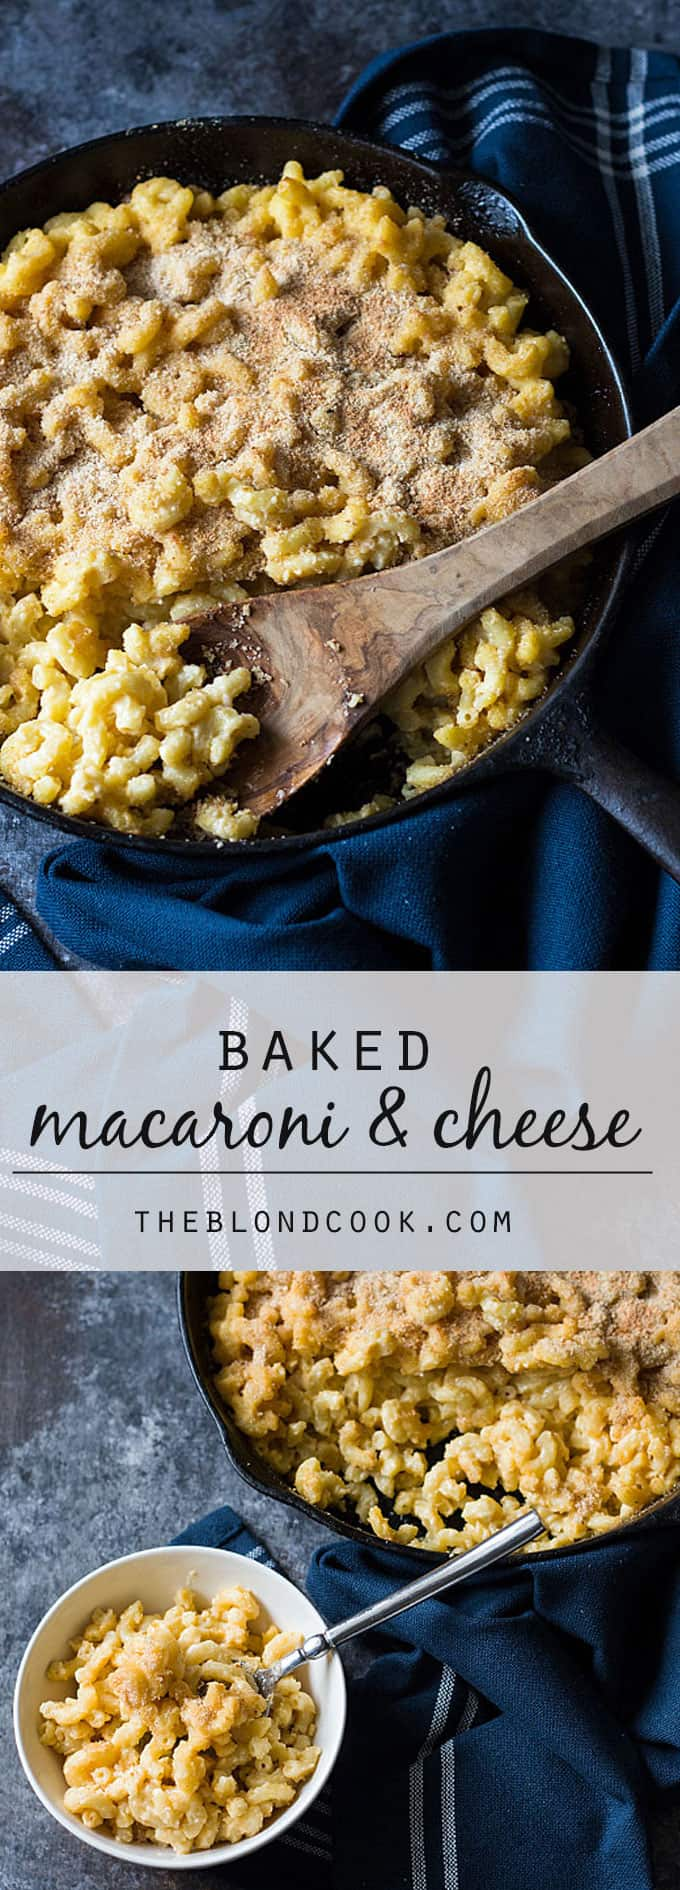 Baked Macaroni and Cheese -- Creamy and cheesy with a crunchy bread crumb topping.